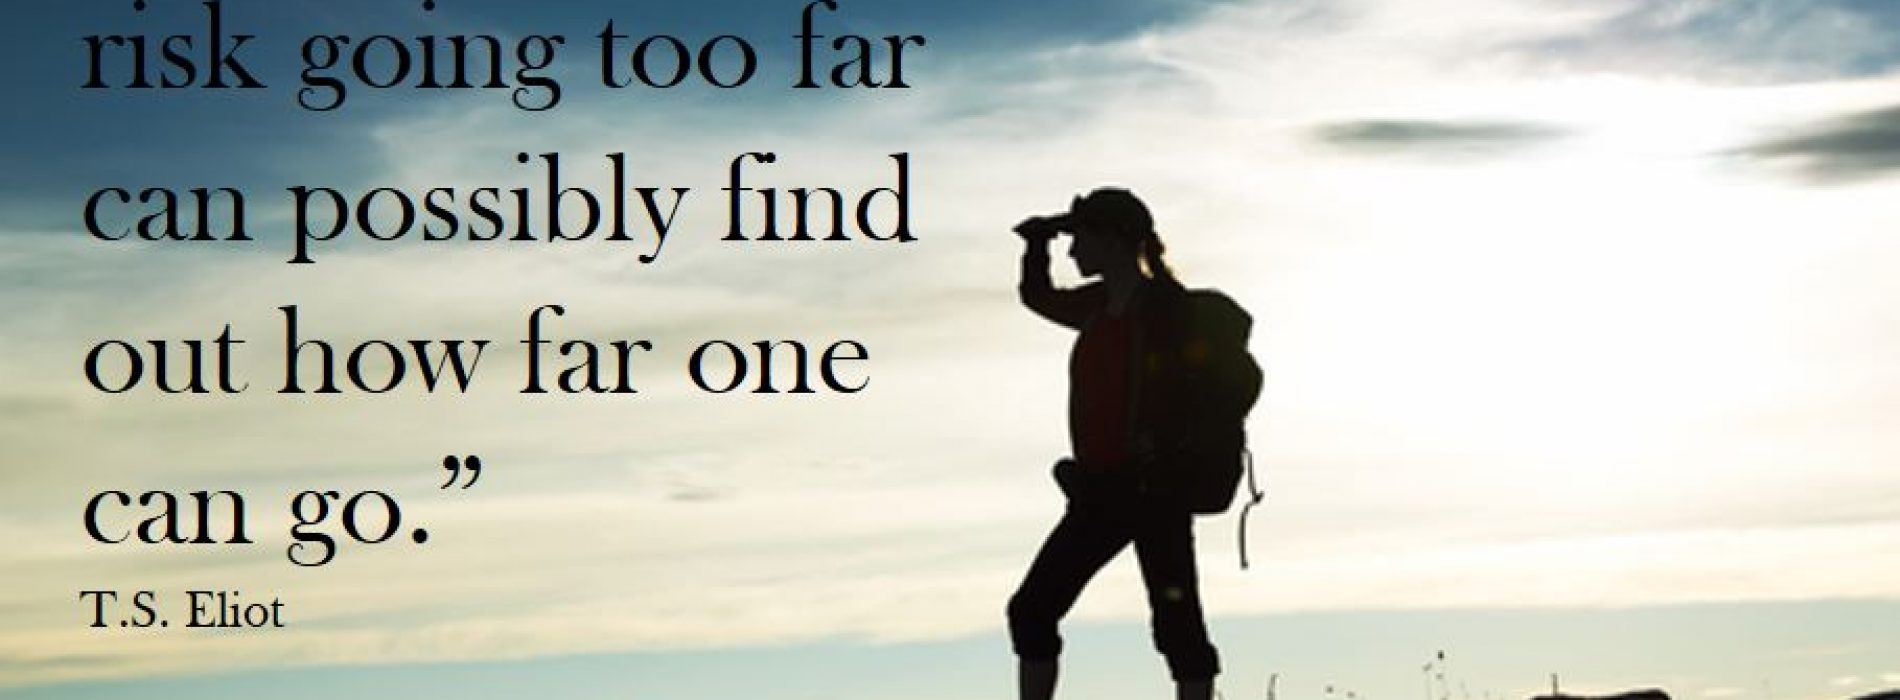 """Only those who risk going too far can possibly find out how far one can go."""